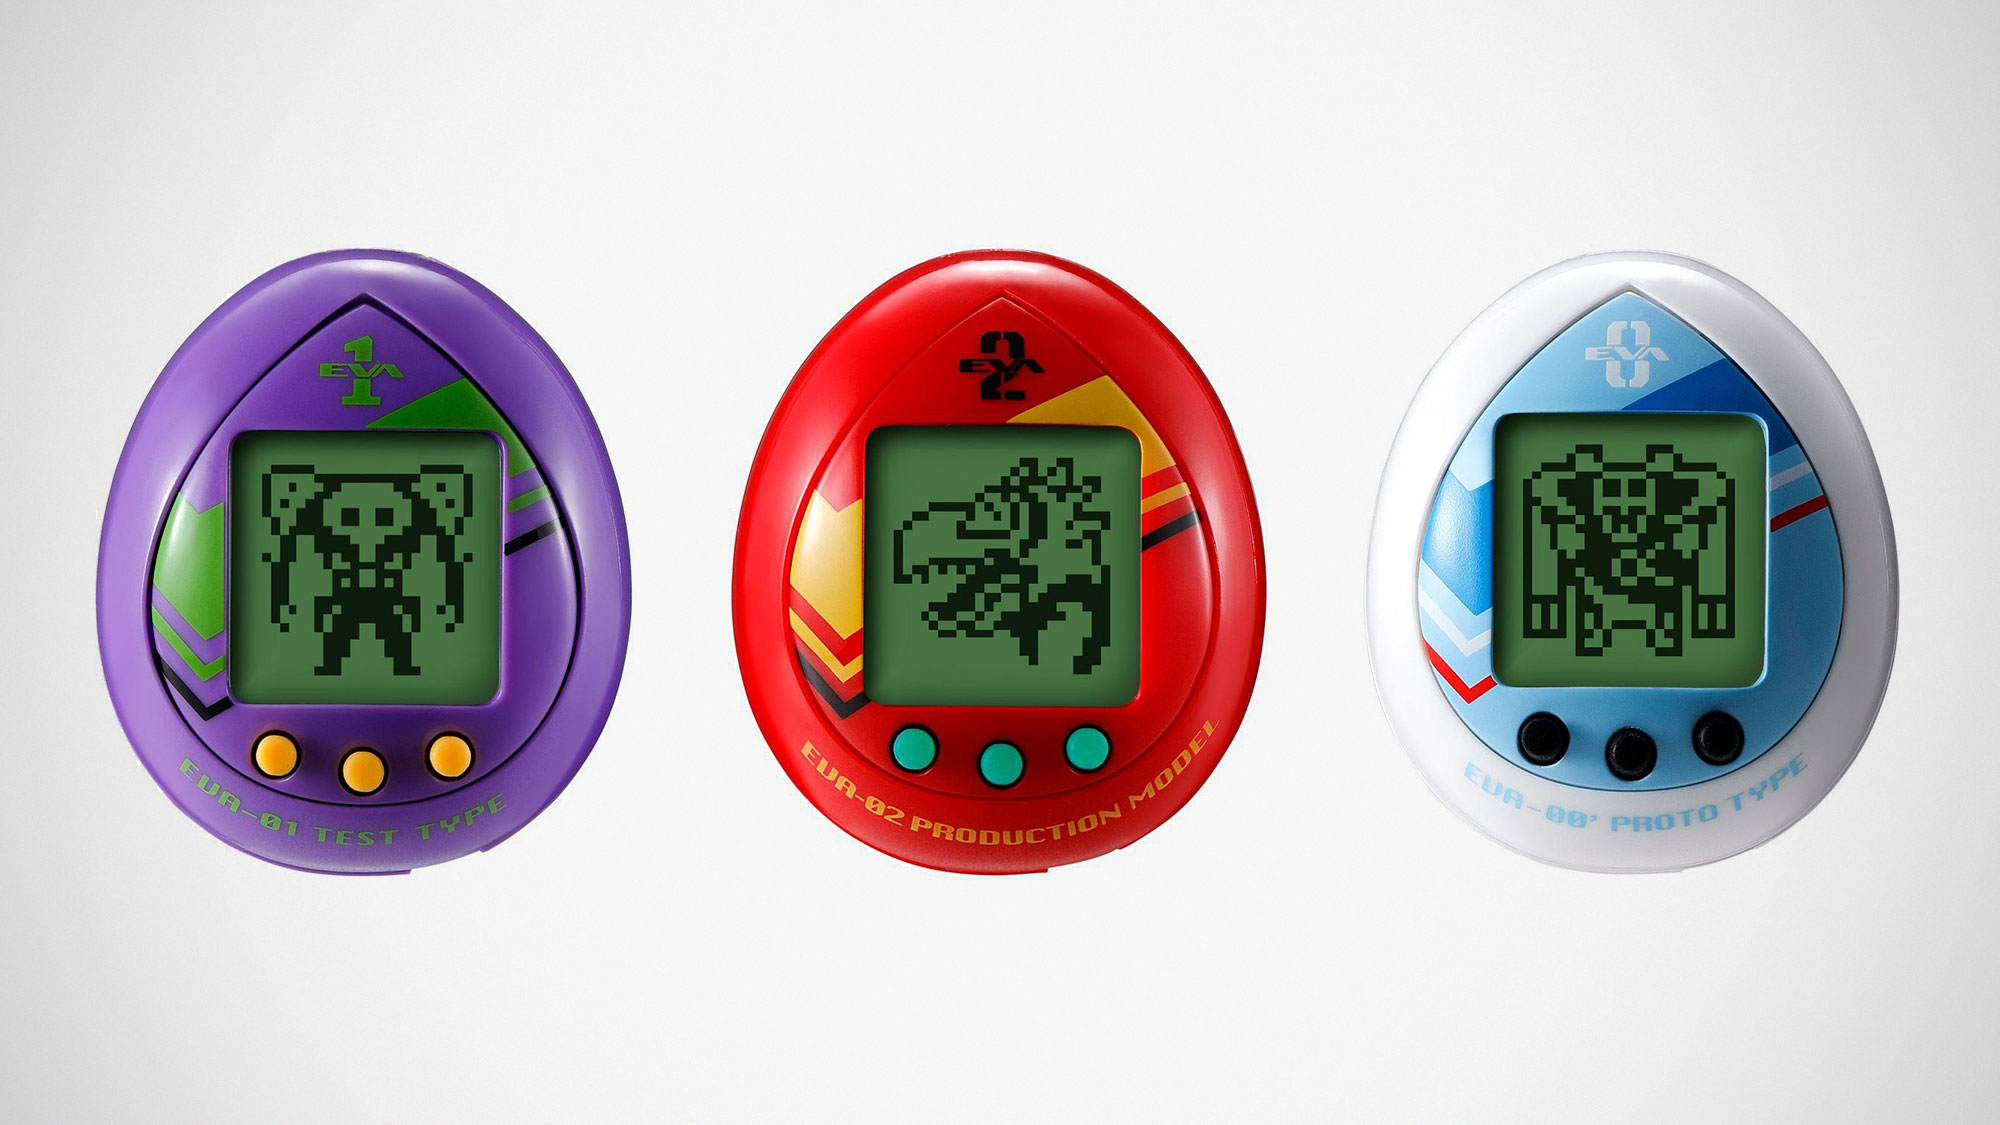 Evangelion-x-Tamagotchi-Handheld-Digital-Pet-Featured